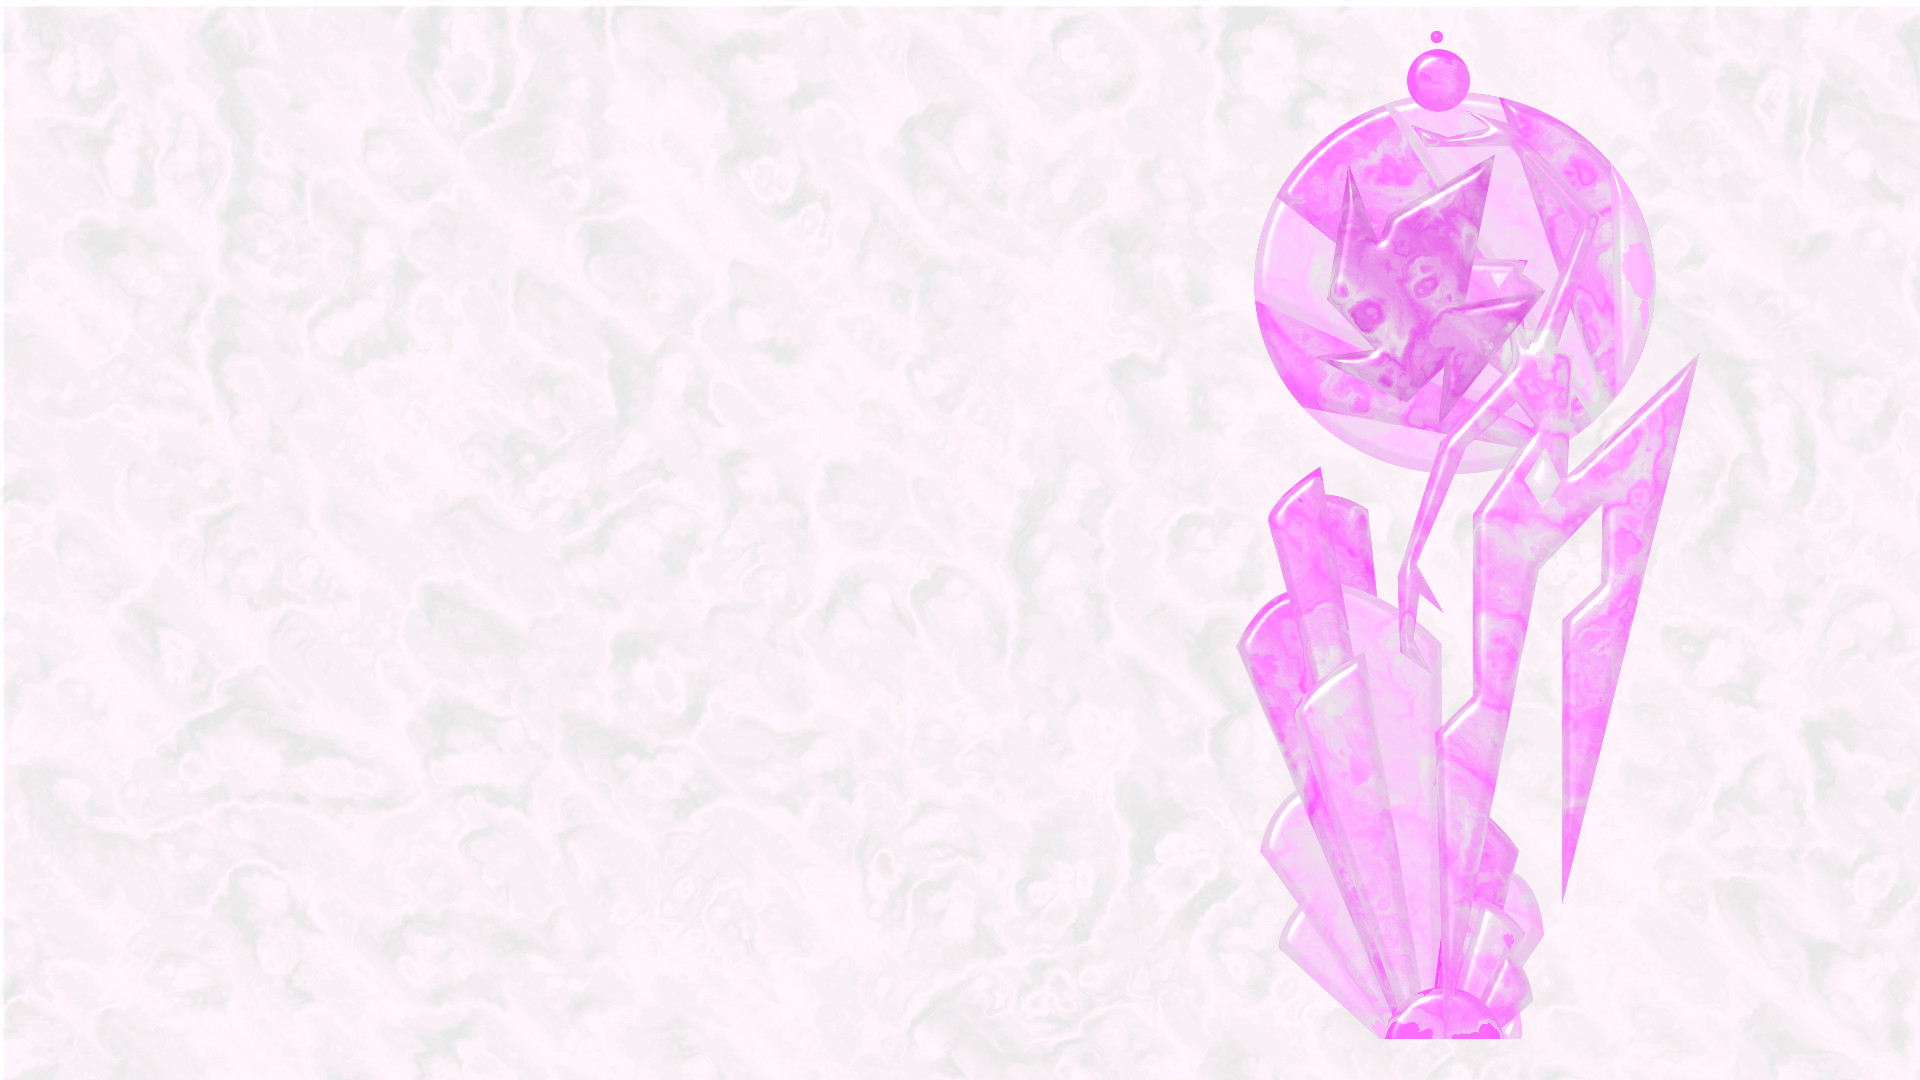 Res: 1920x1080, Pink Diamond Mural Wallpaper by CaptainBeans Pink Diamond Mural Wallpaper  by CaptainBeans